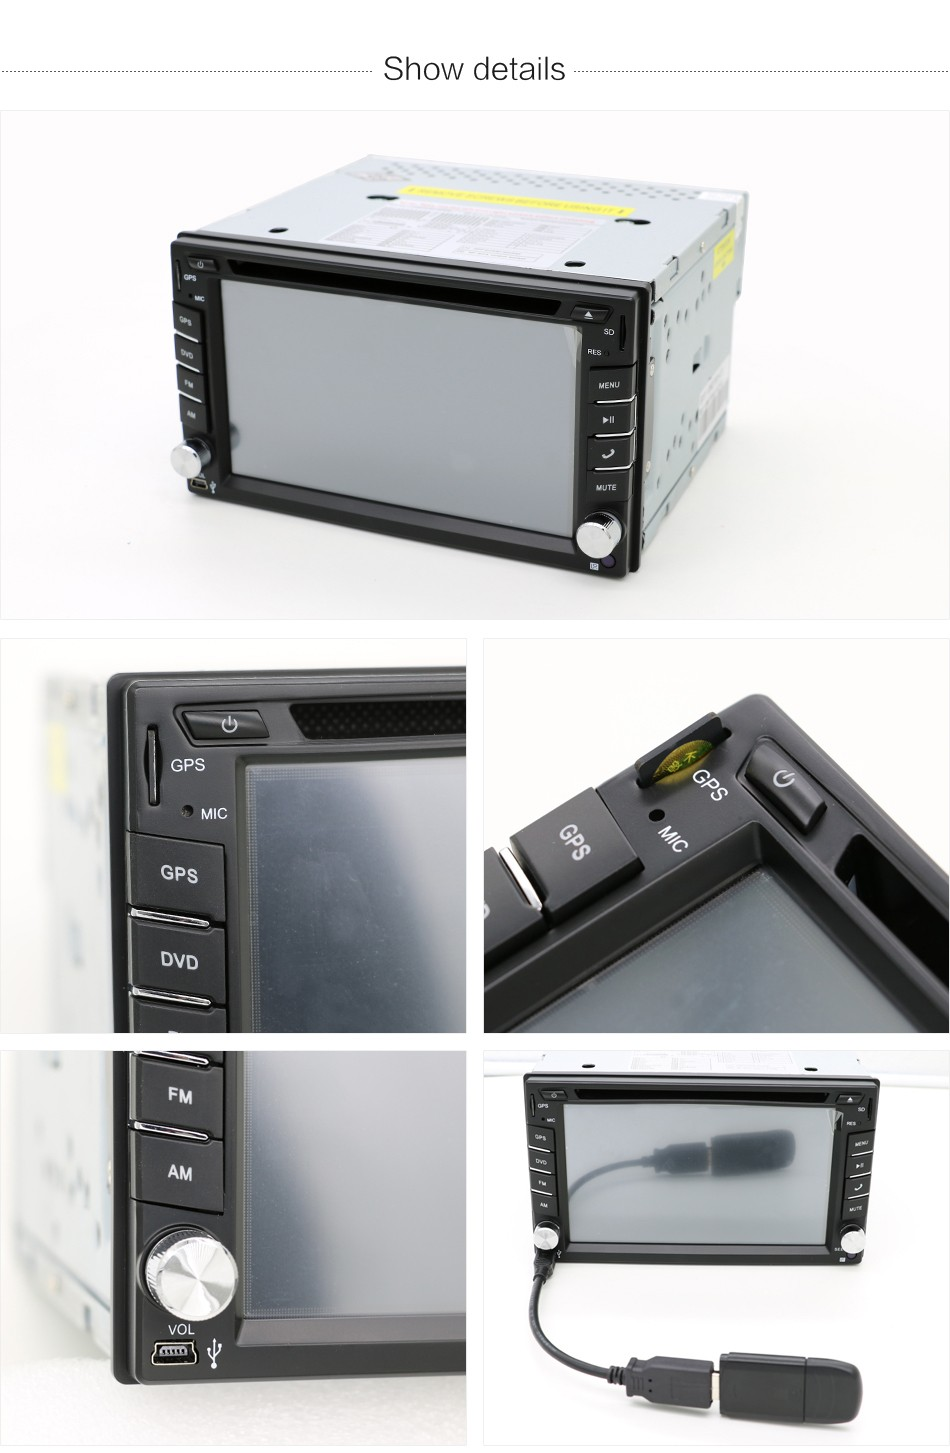 nov univerz ln autor dio 2 din dvd gps kamera aukro archiv. Black Bedroom Furniture Sets. Home Design Ideas